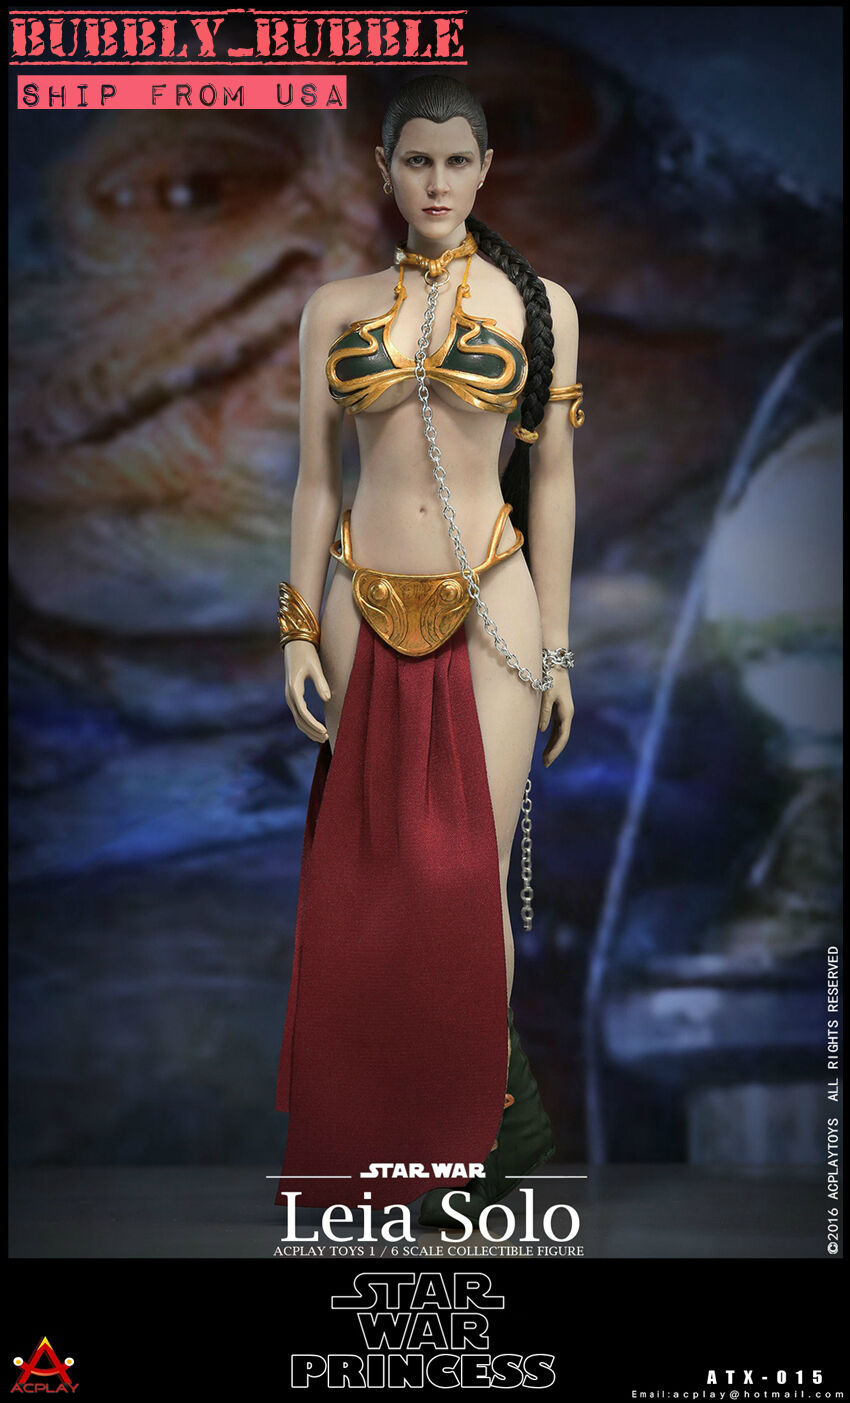 1/6 Star Wars Princess Leia Organa Head Slave Outfit Set For Hot Toys PHICEN USA